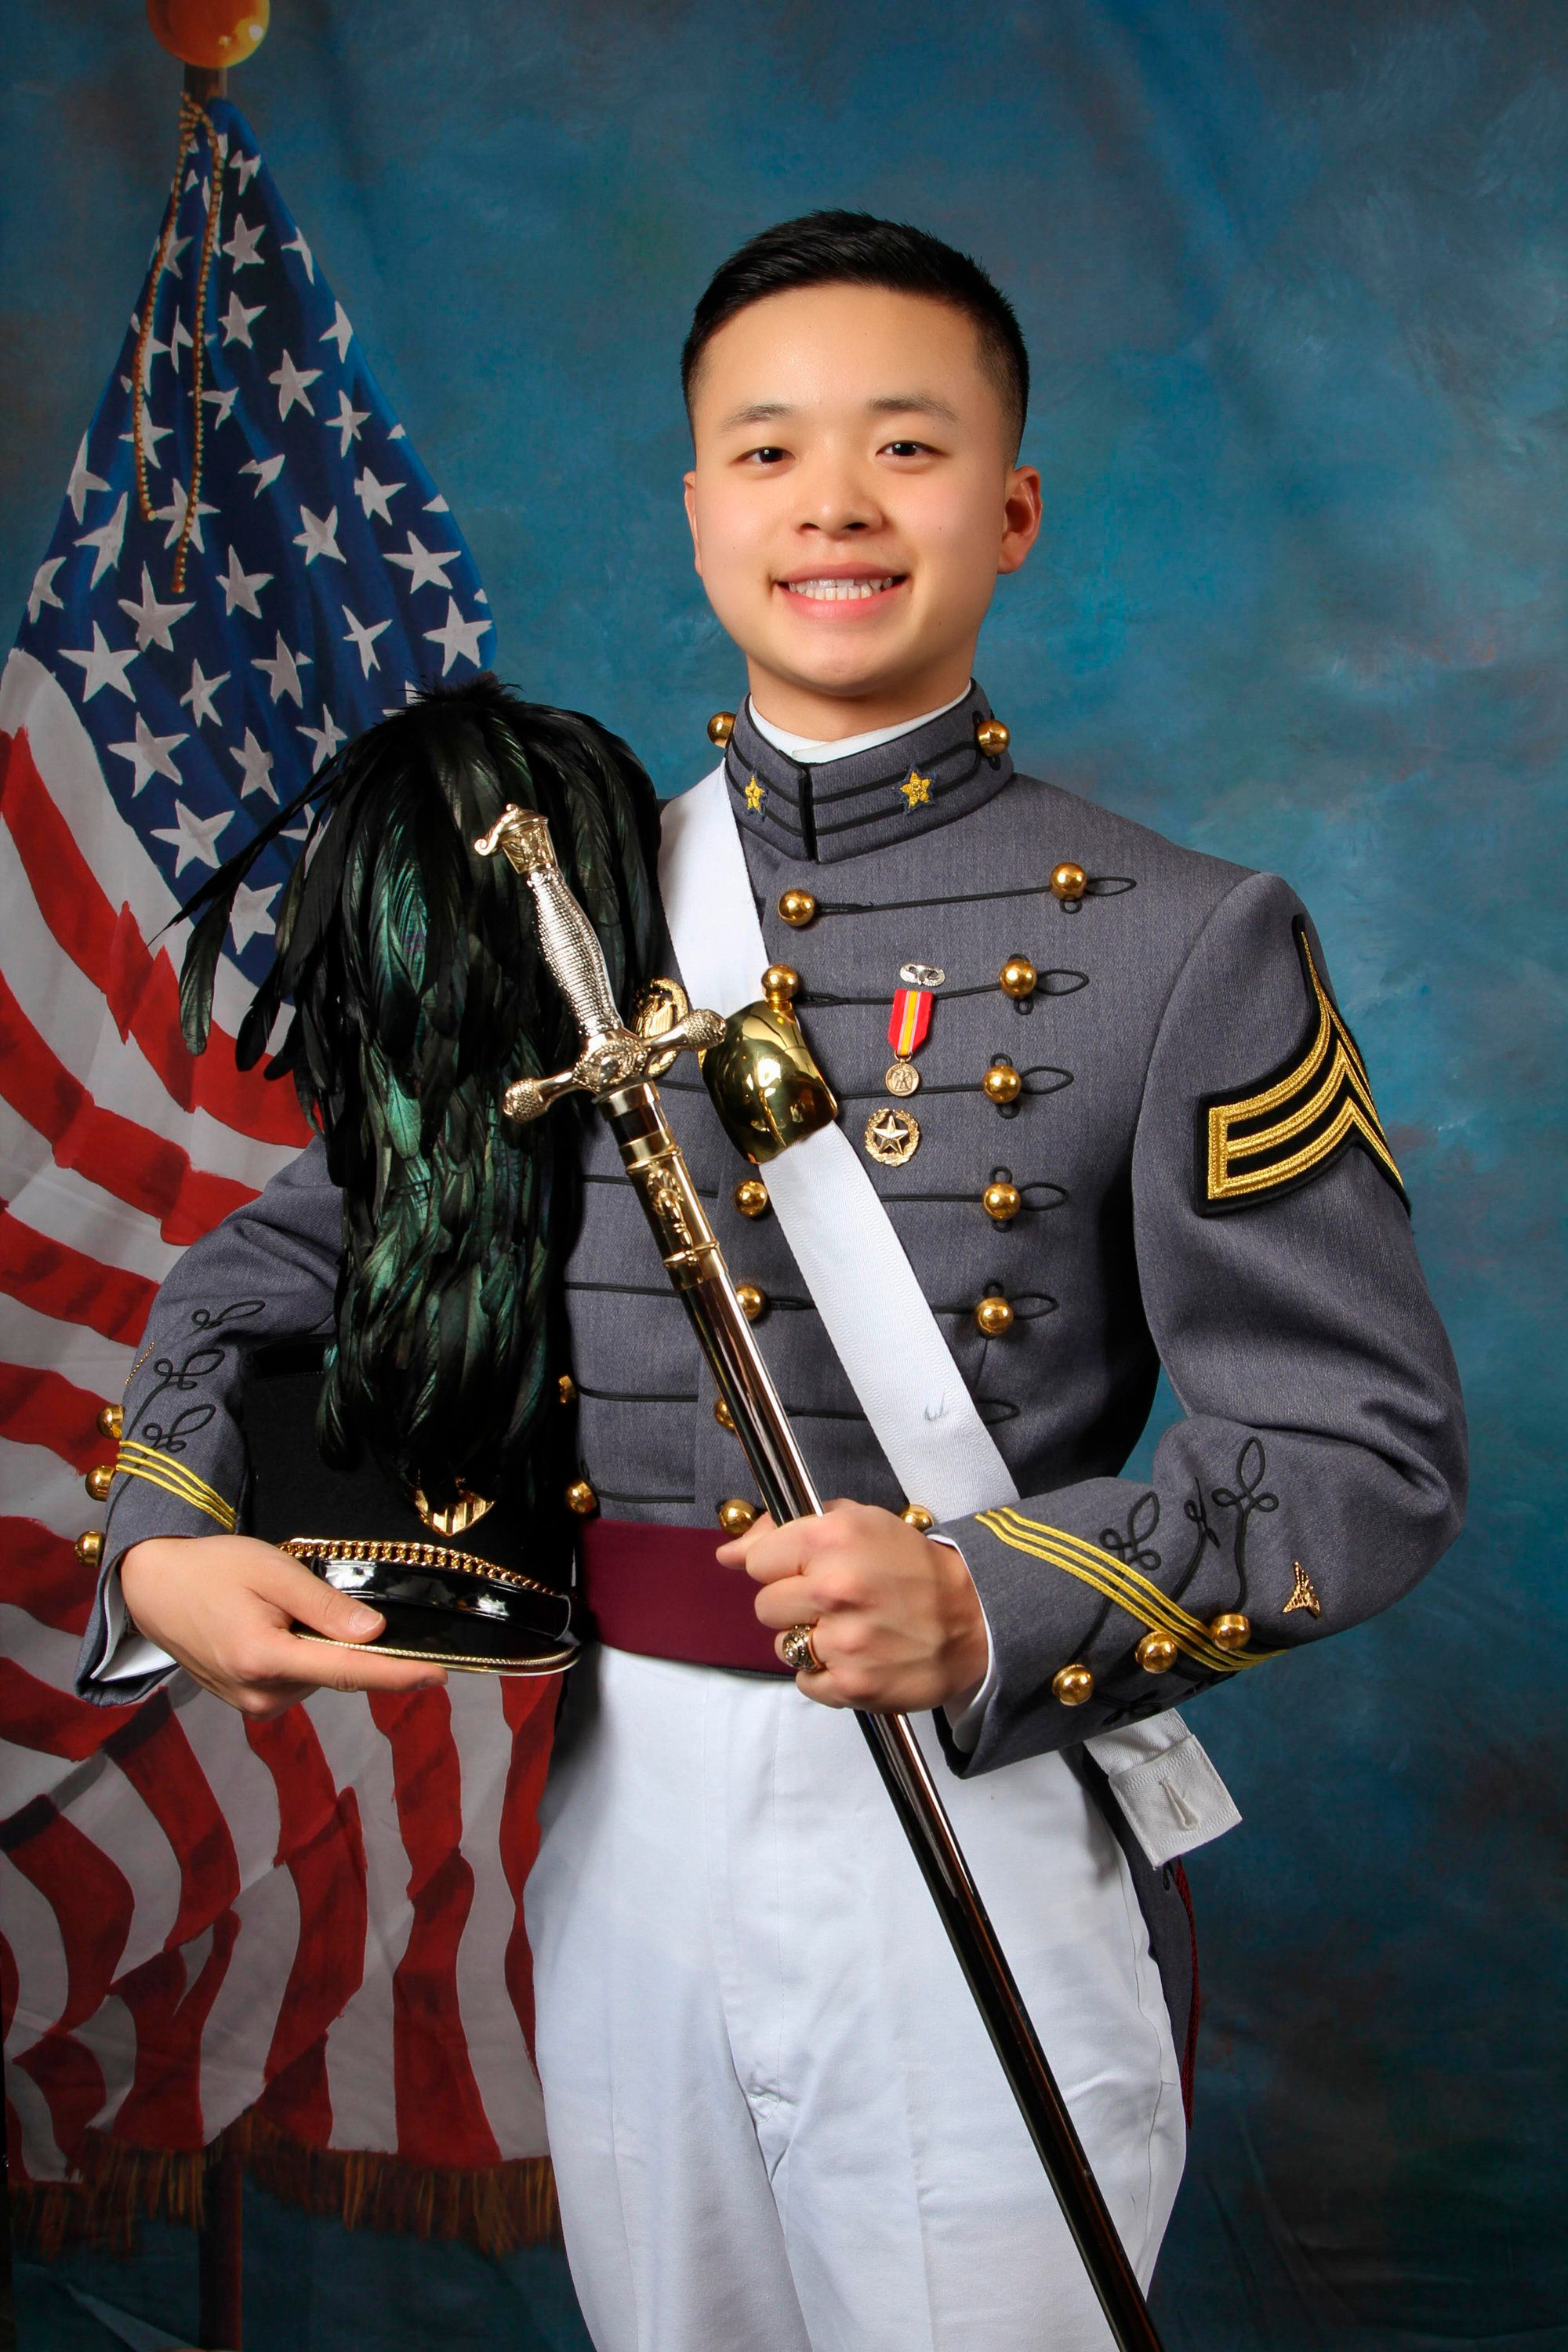 The parents of West Point Cadet Peter Zhu, who died from injuries he sustained while skiing on Feb. 23,received a judge